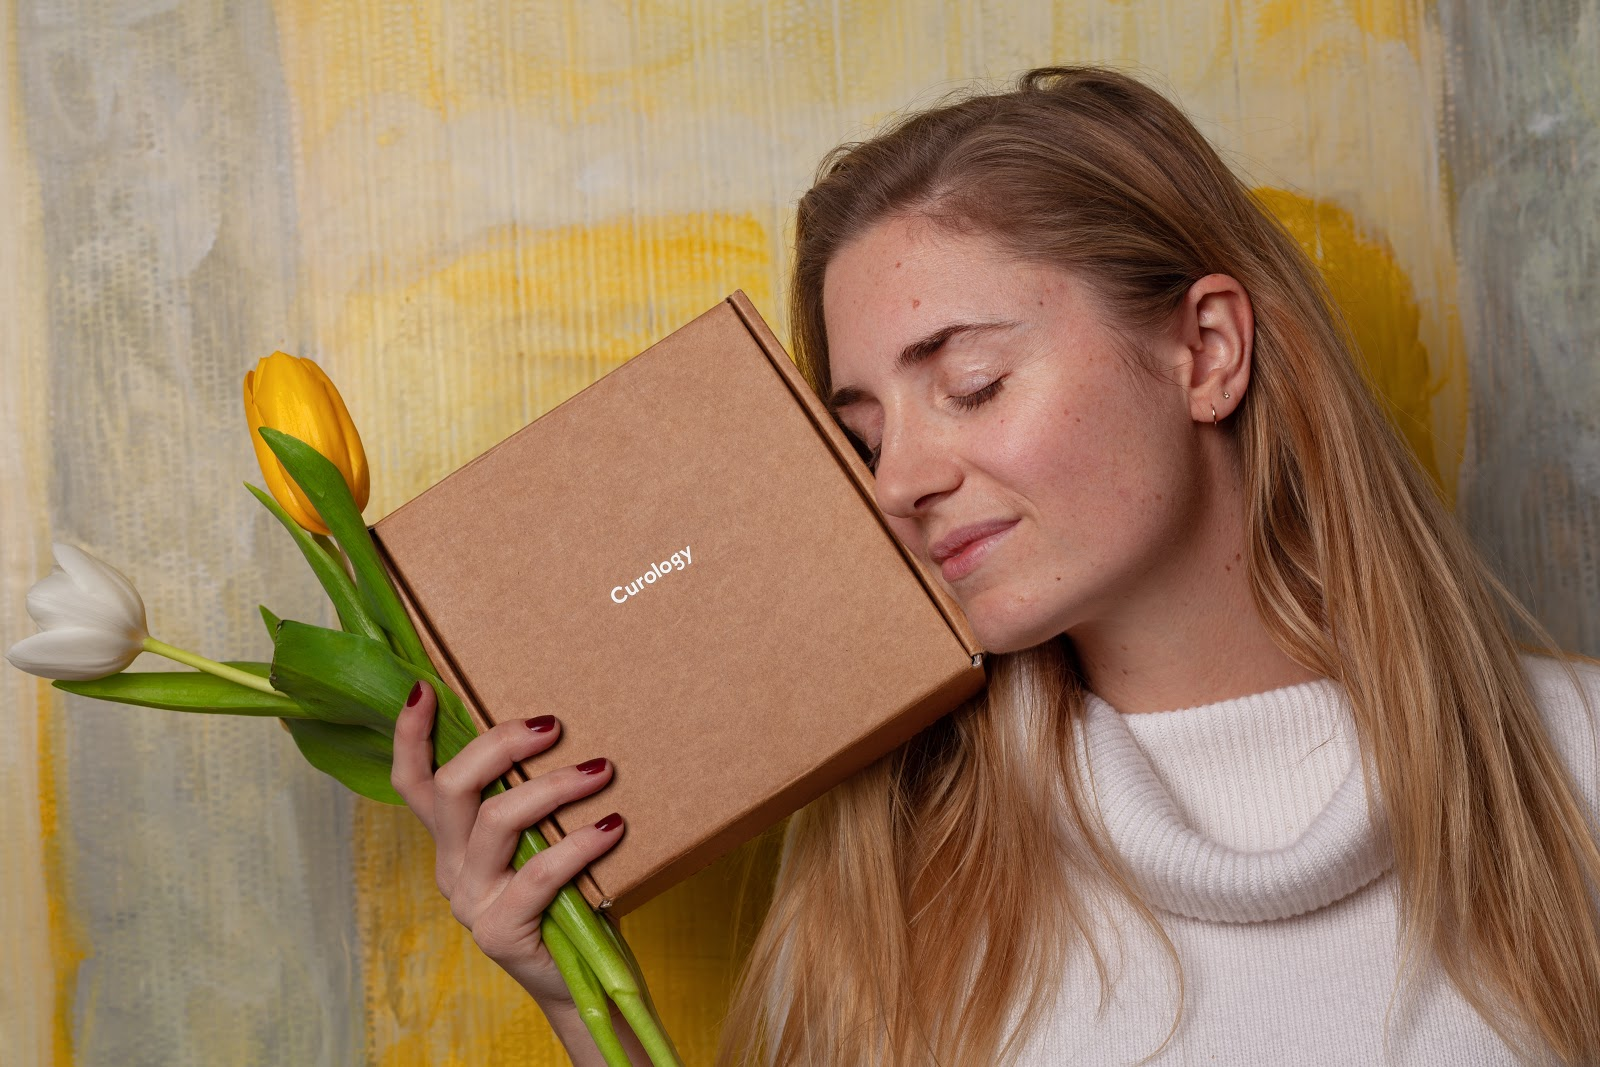 Whoman holding flowers and a custom shipping box next to her face